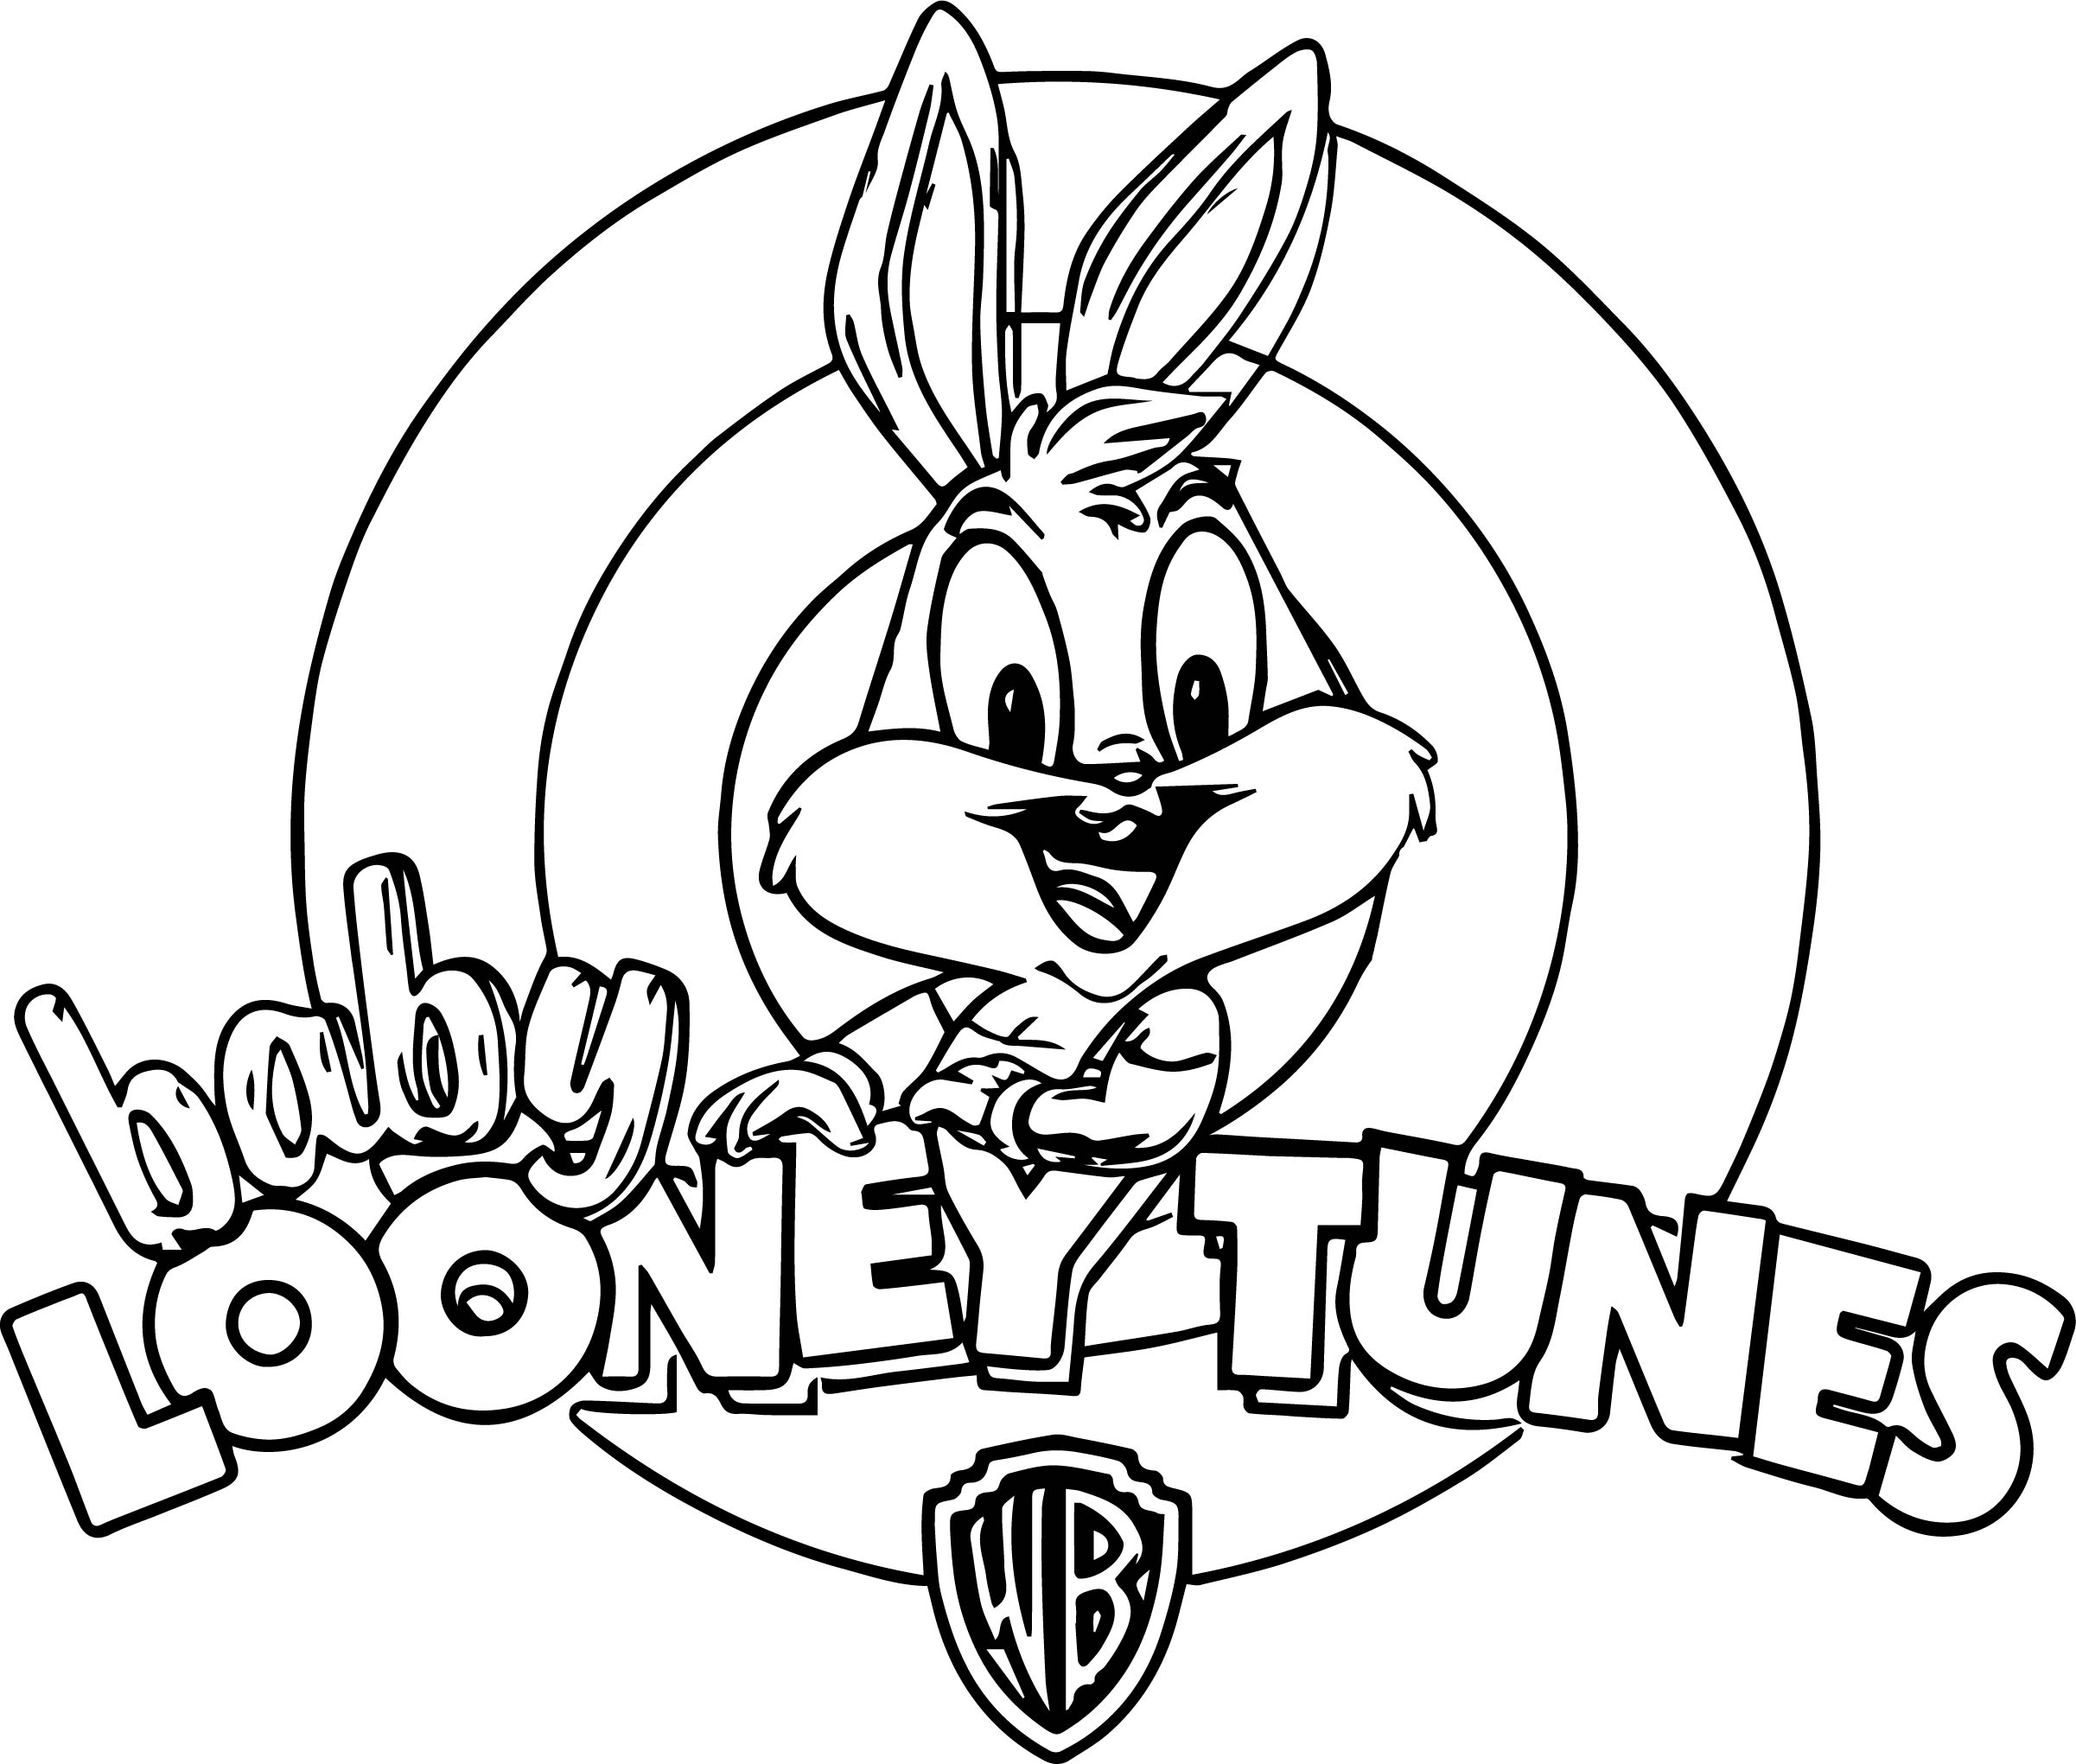 Looney Tunes Bunny And Logo Kids Coloring Page